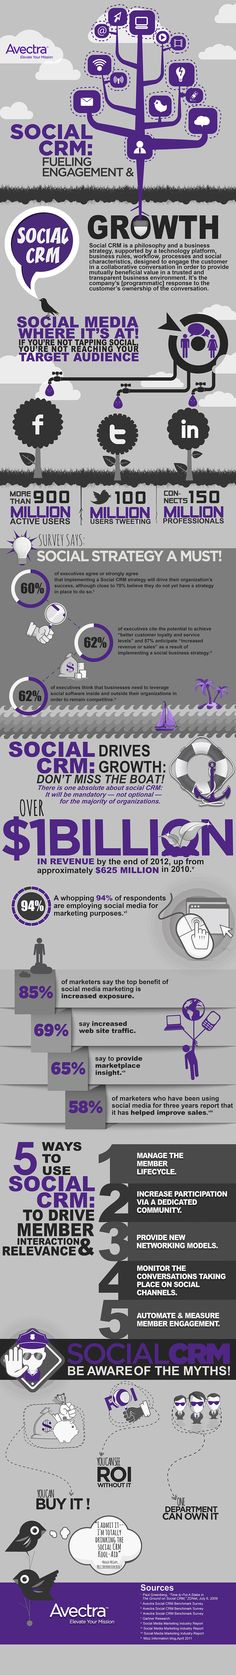 Social CRM Fuels Engagement and Growth [INFOGRAPHIC]  -Avectra Social CRM (via SocialFish)